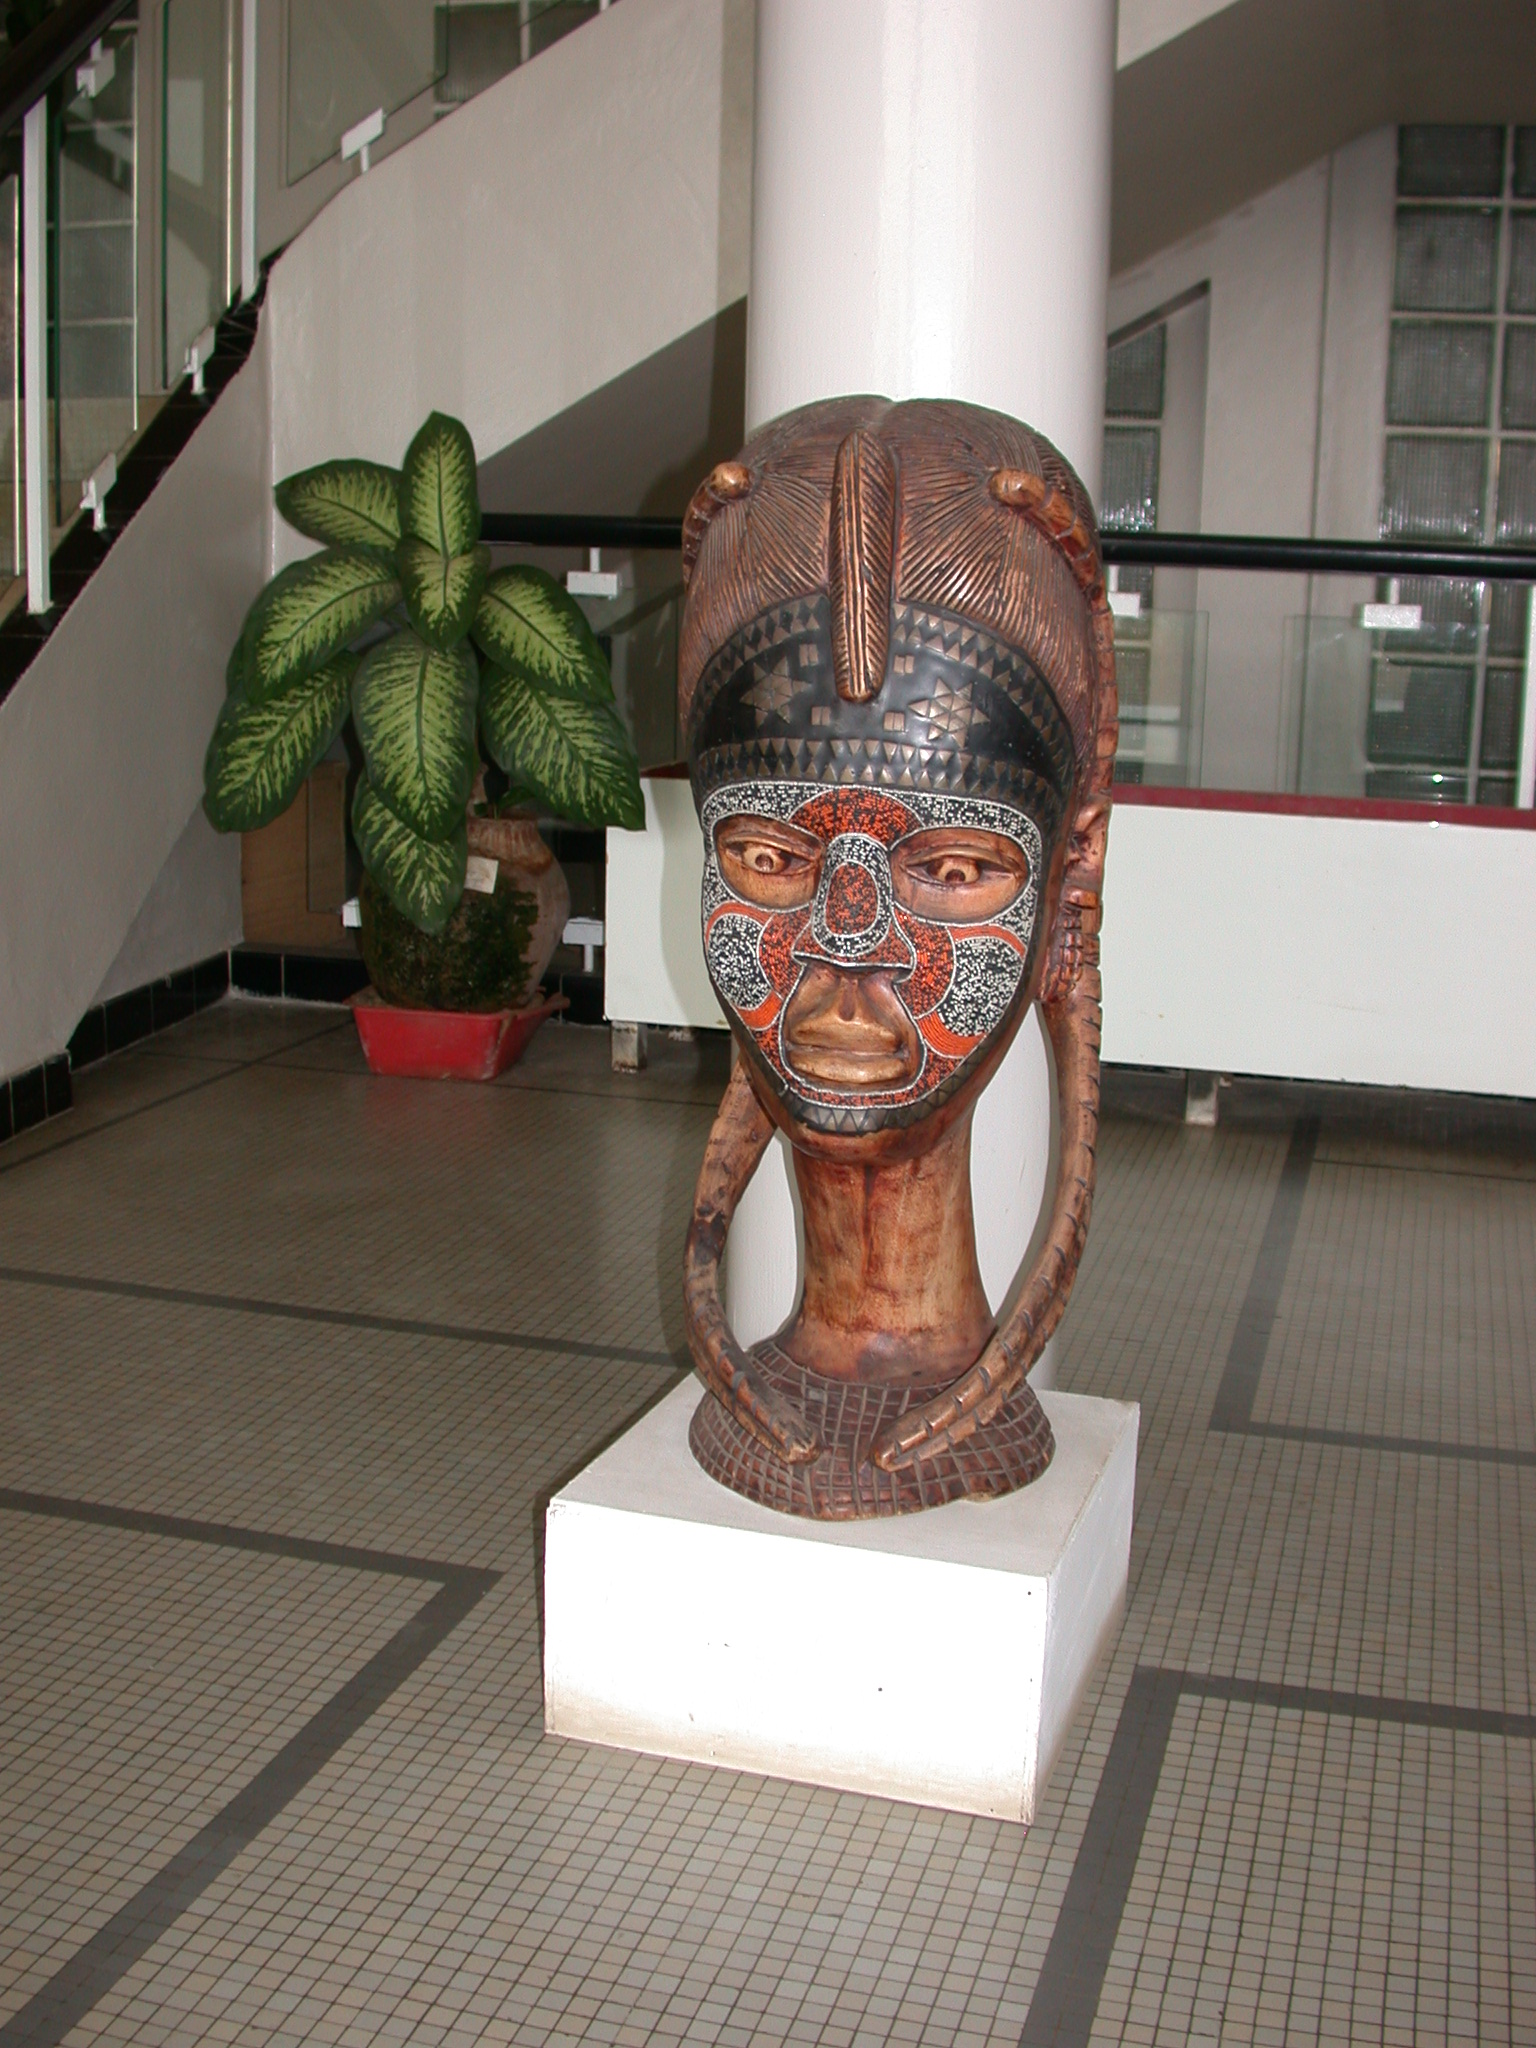 Bust of Woman in Entrance Hall of Institut Fondamental de l Afrique Noire, IFAN, Dakar, Senegal